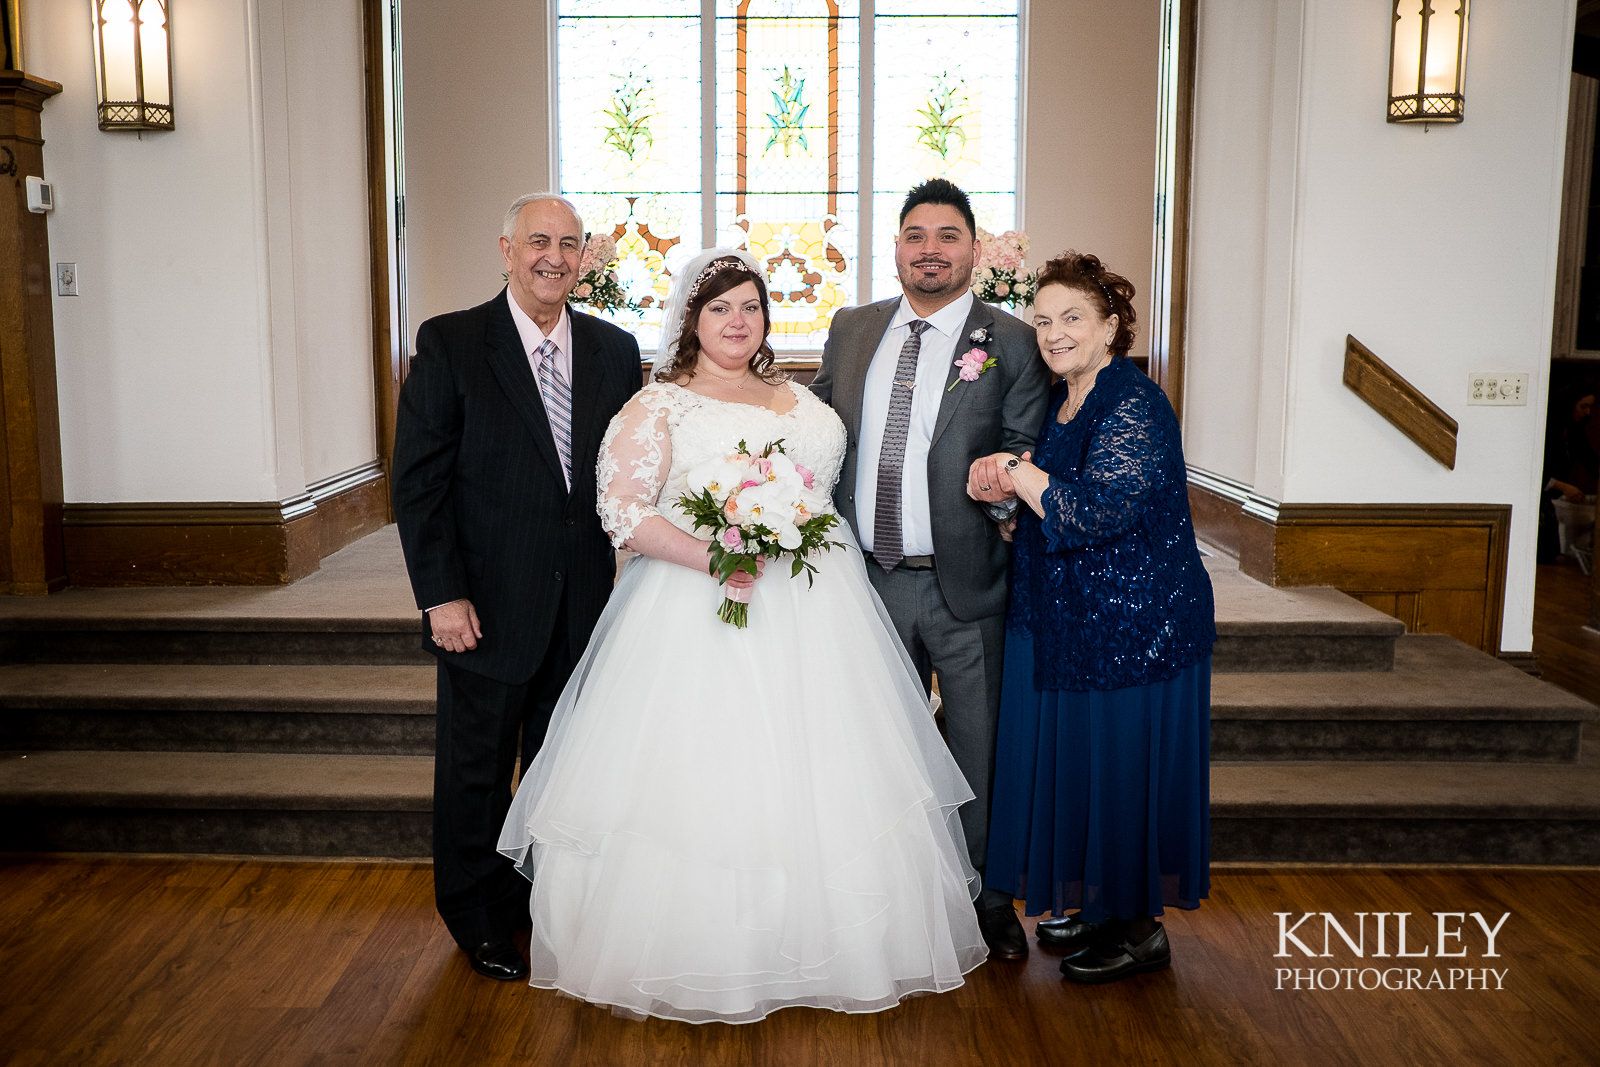 050 - Westminster Chapel - Rochester NY wedding photo - Kniley Photography.jpg